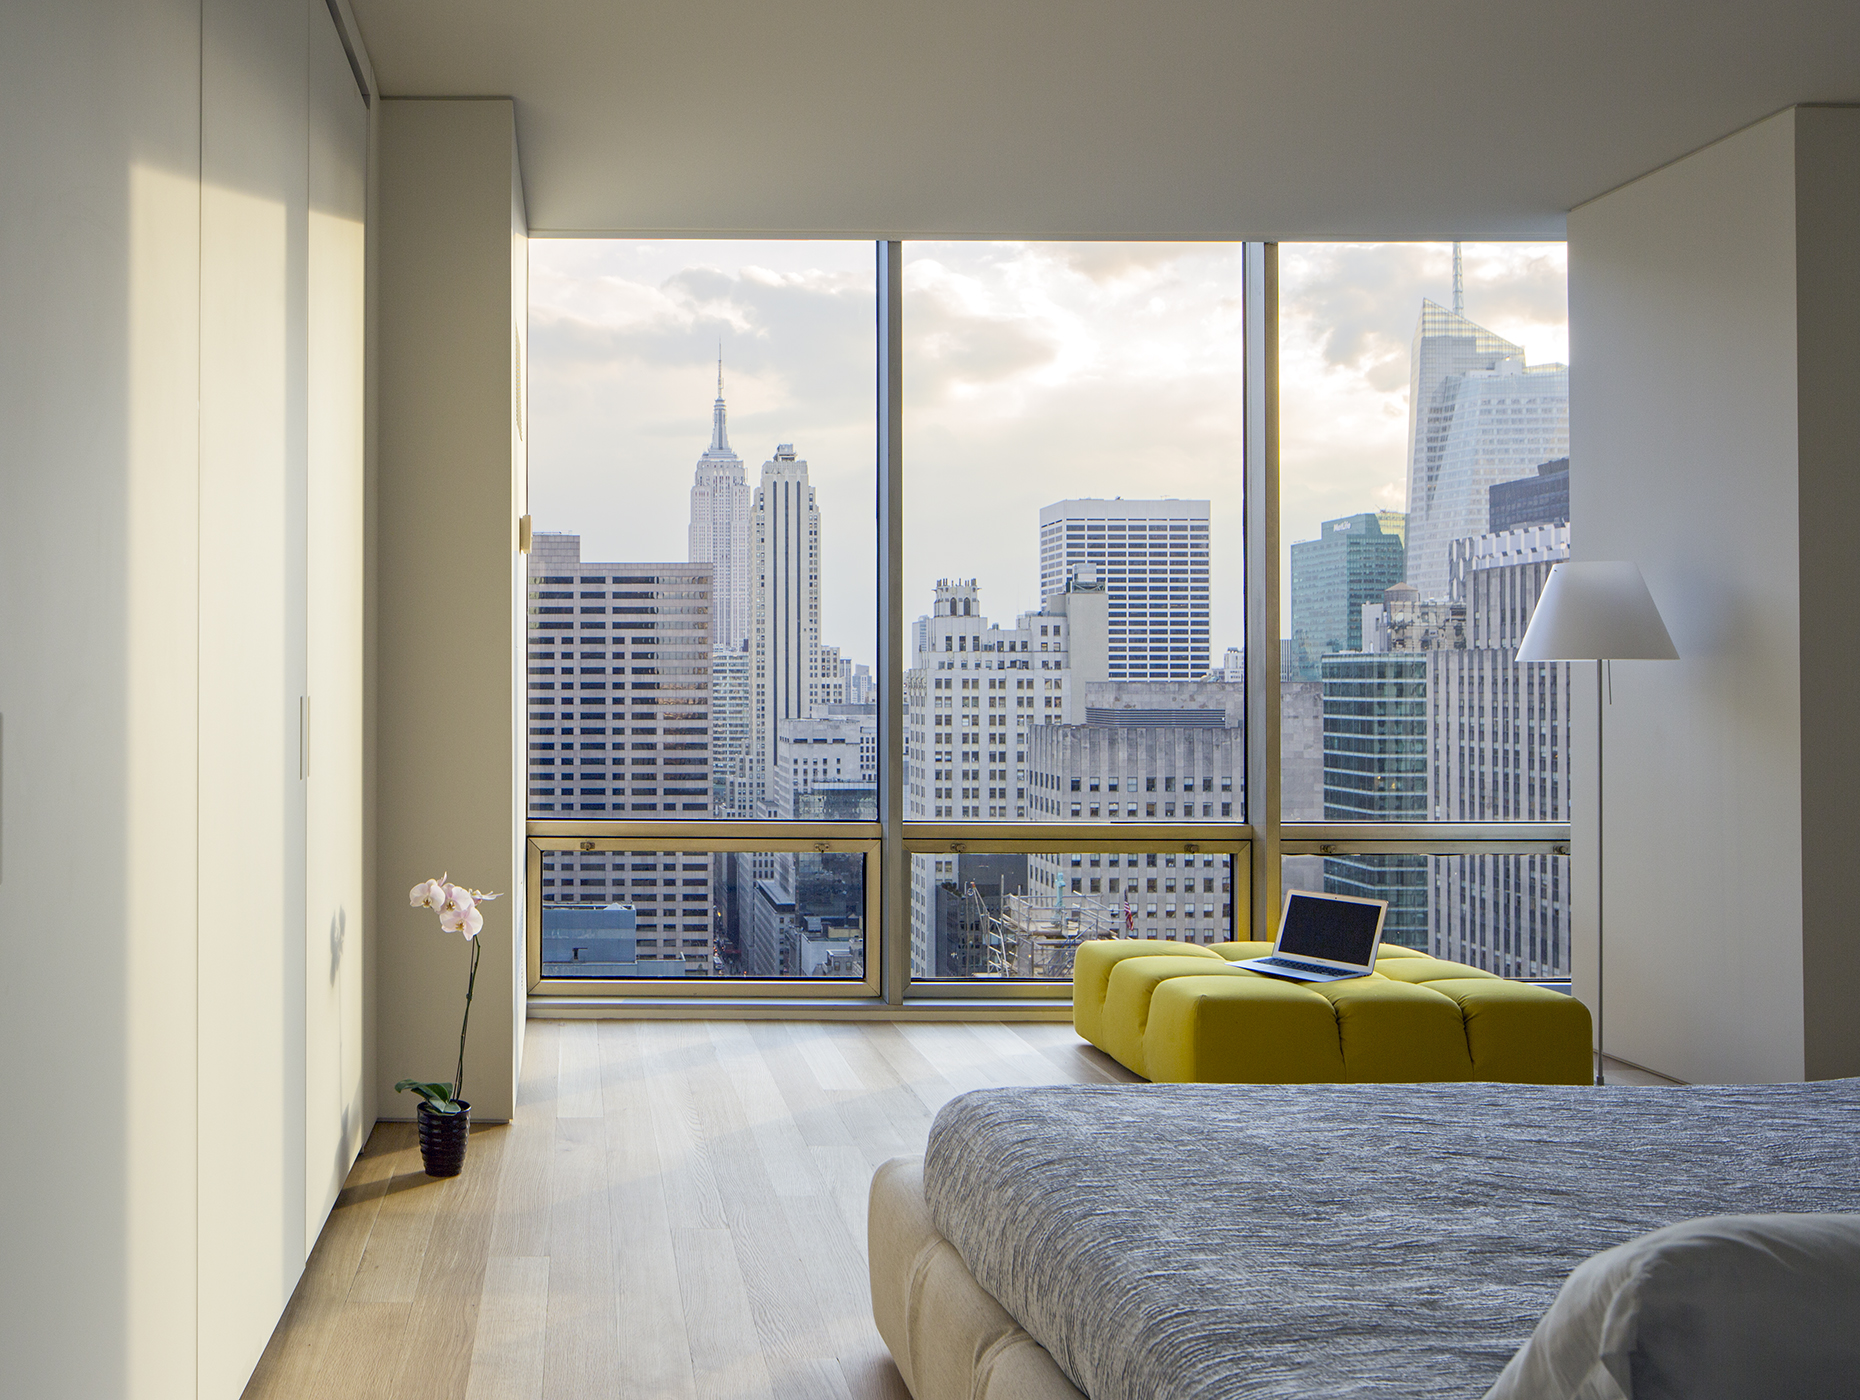 A bedroom in New York City'sUpper East Side bedroom by James Wagman Architect